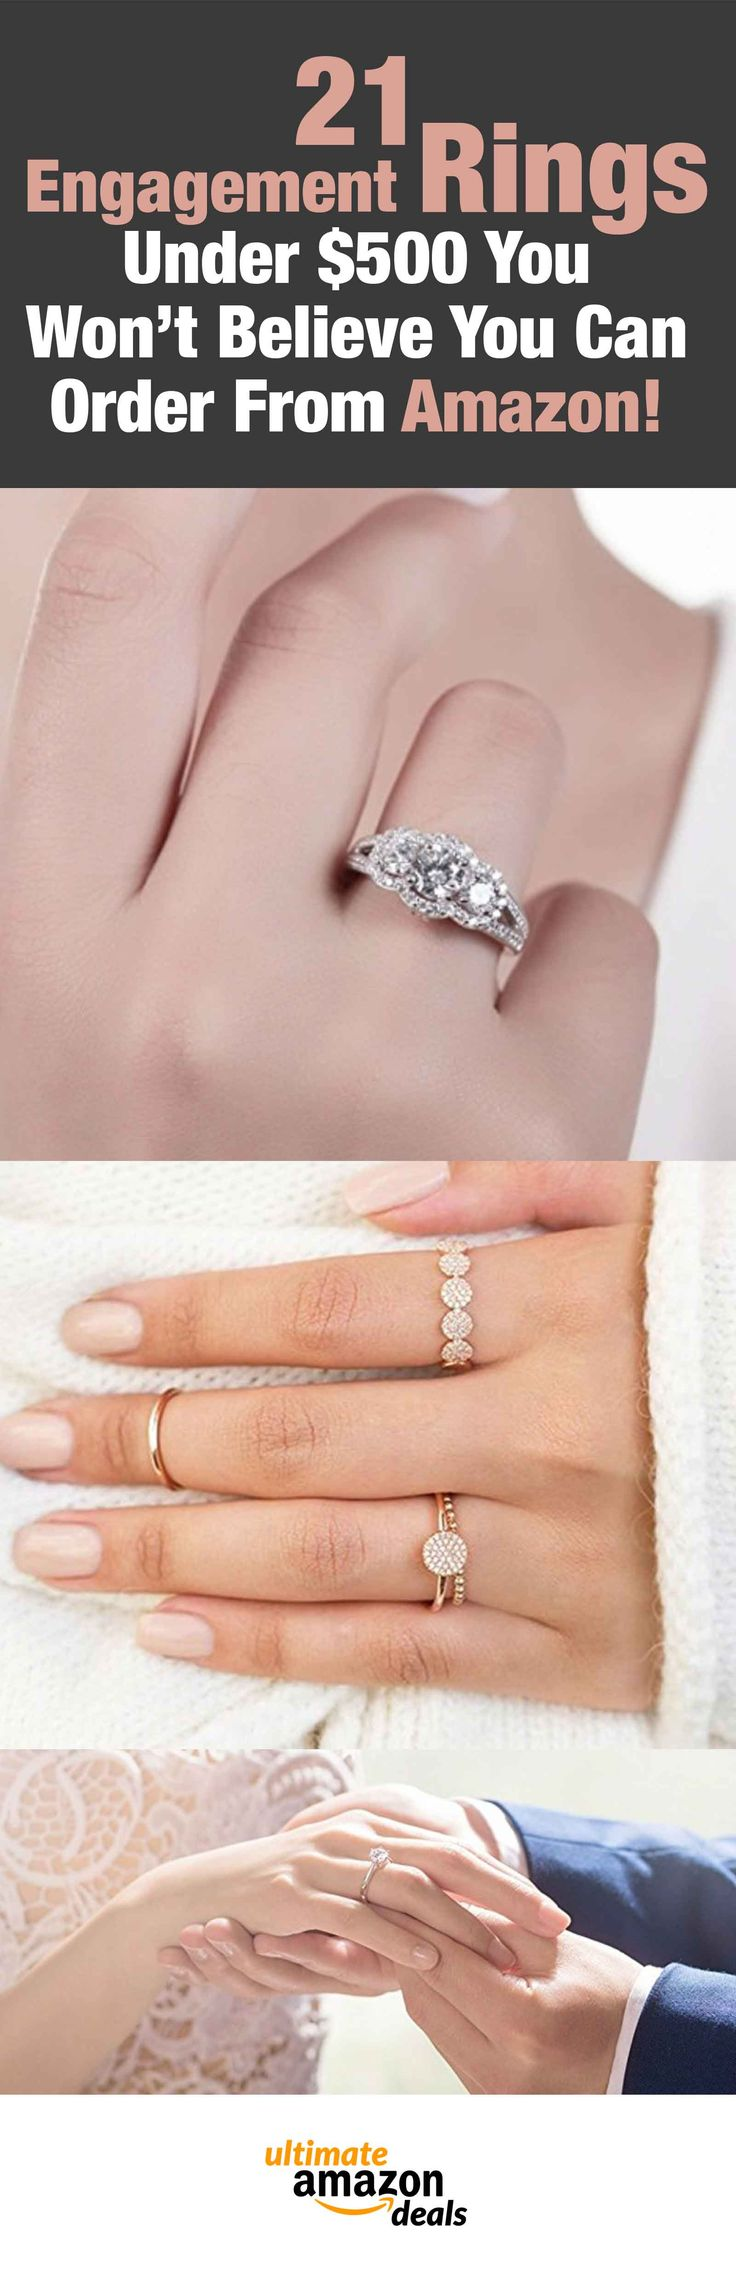 Rings Ideas : 21 Engagement Rings Under $500 You Won\'t Believe You ...